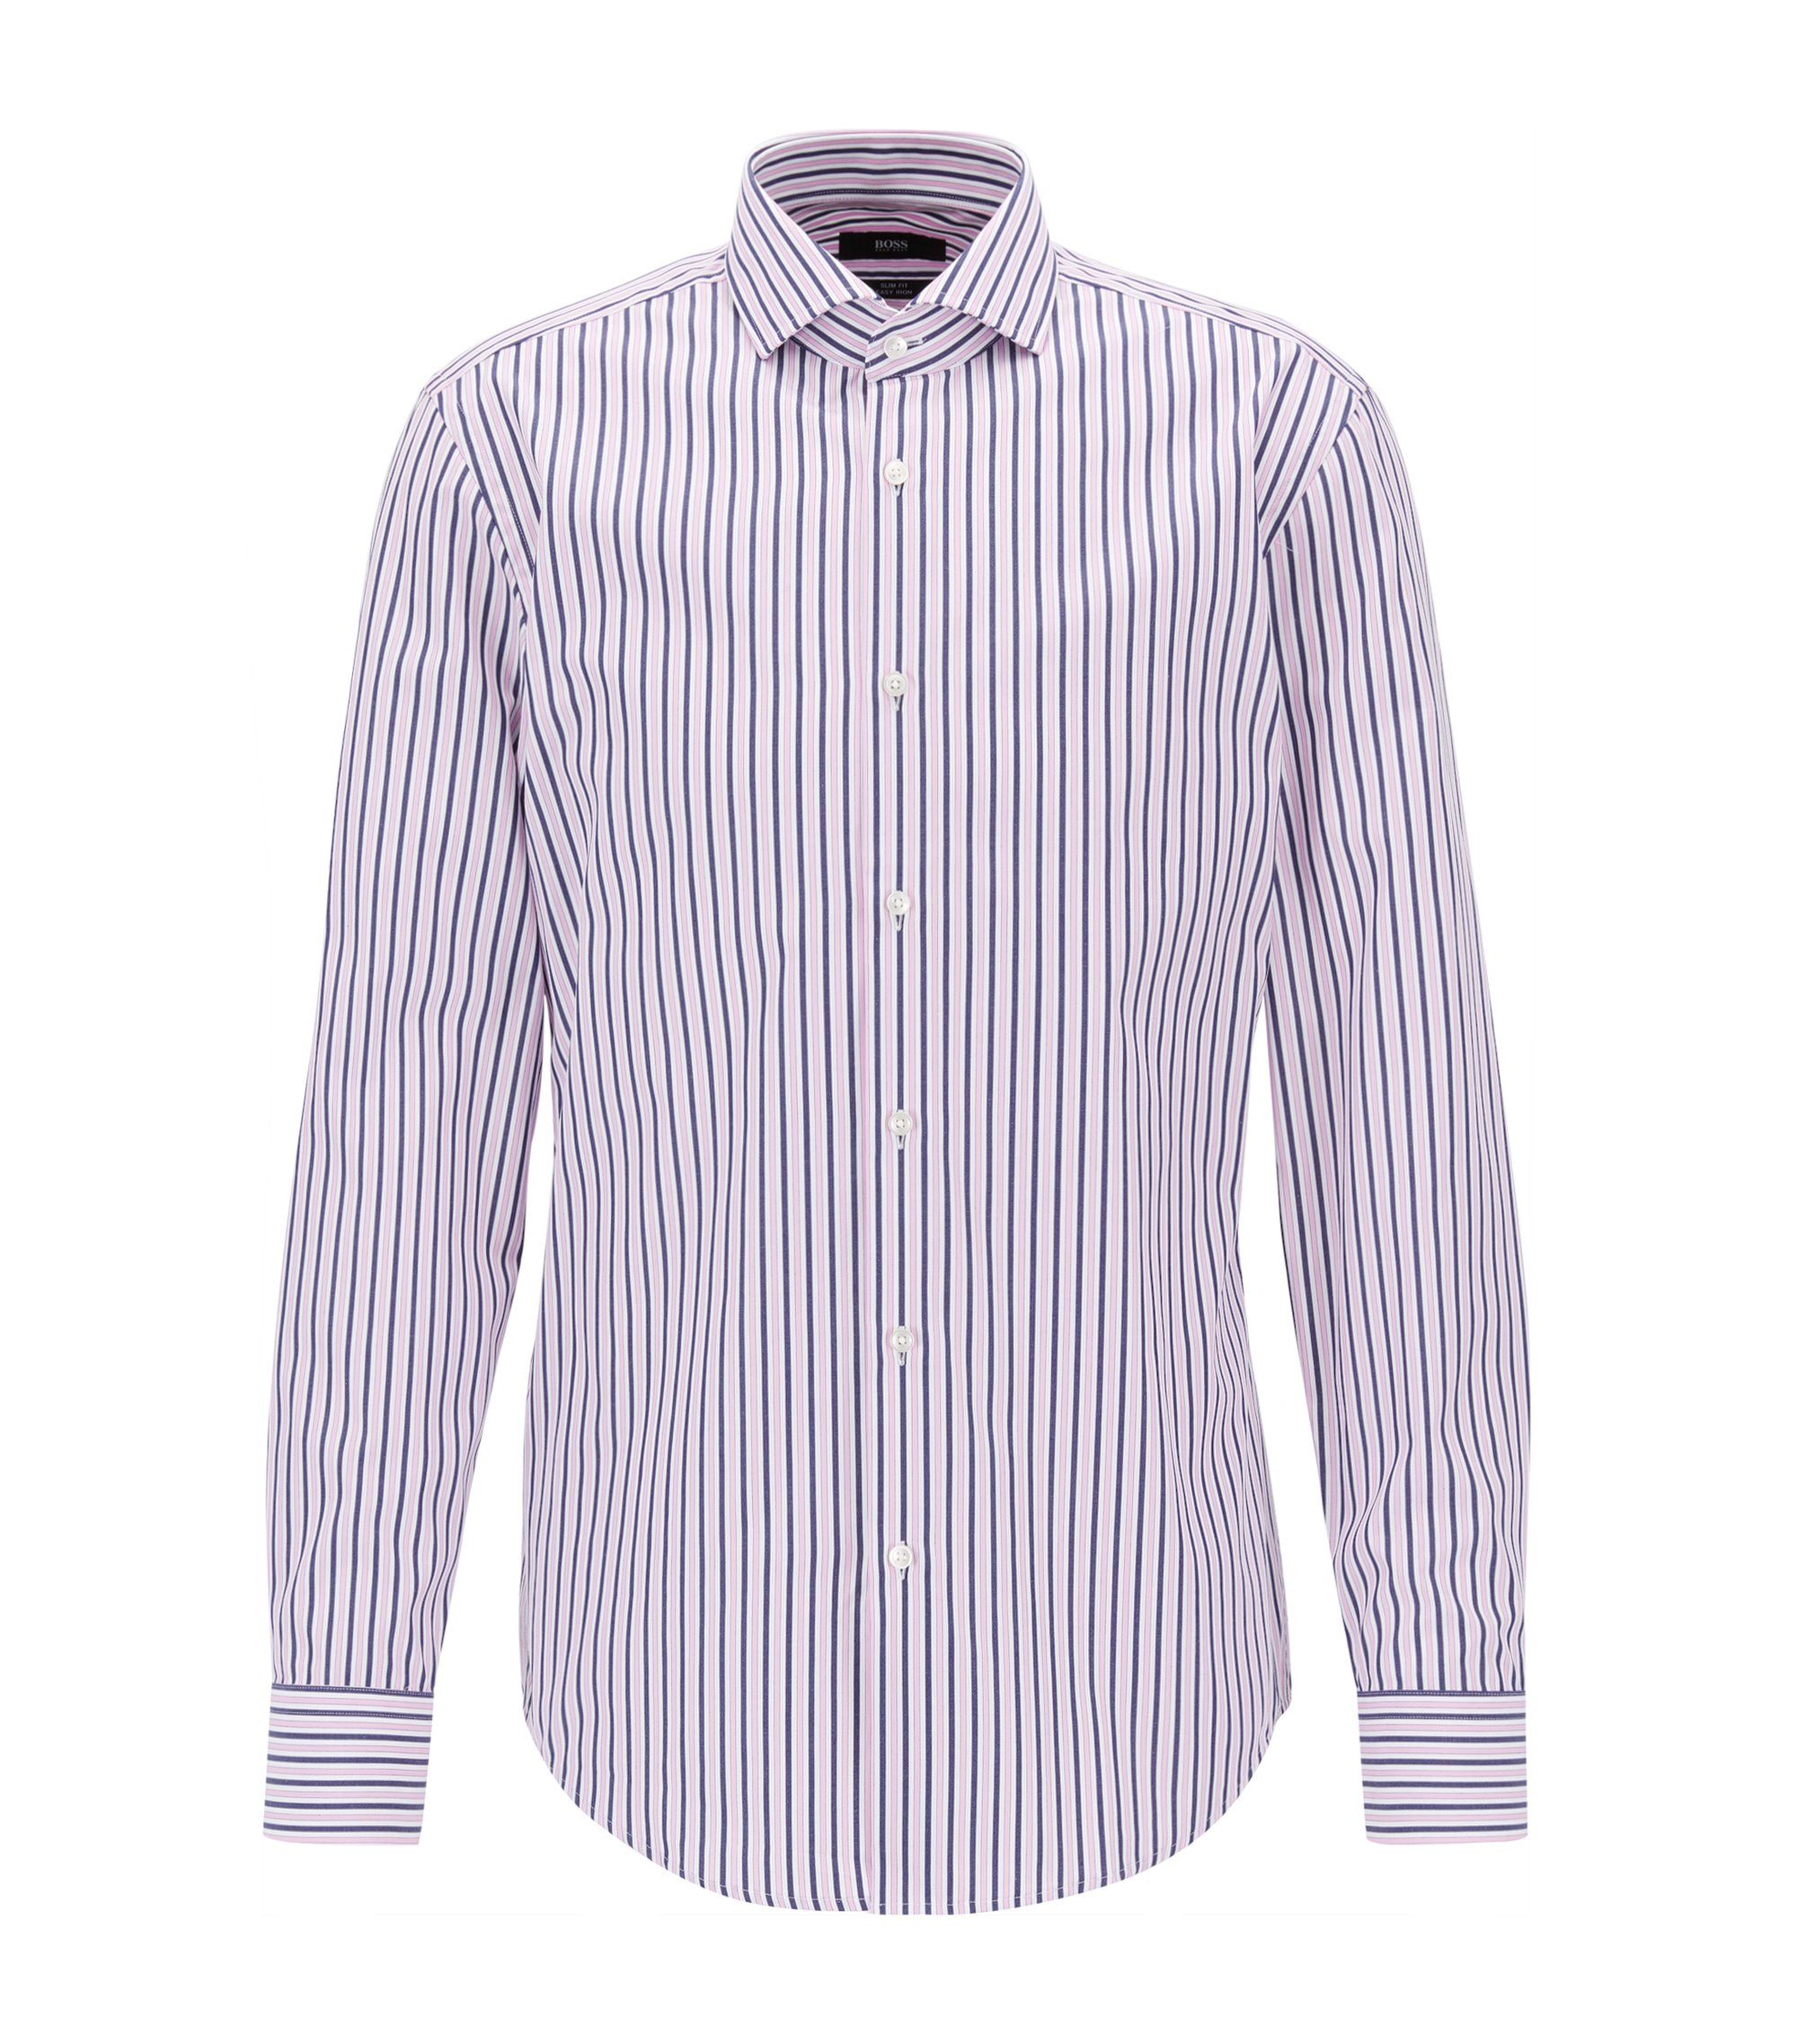 Striped Cotton Dress Shirt, Slim Fit | Jason, light pink